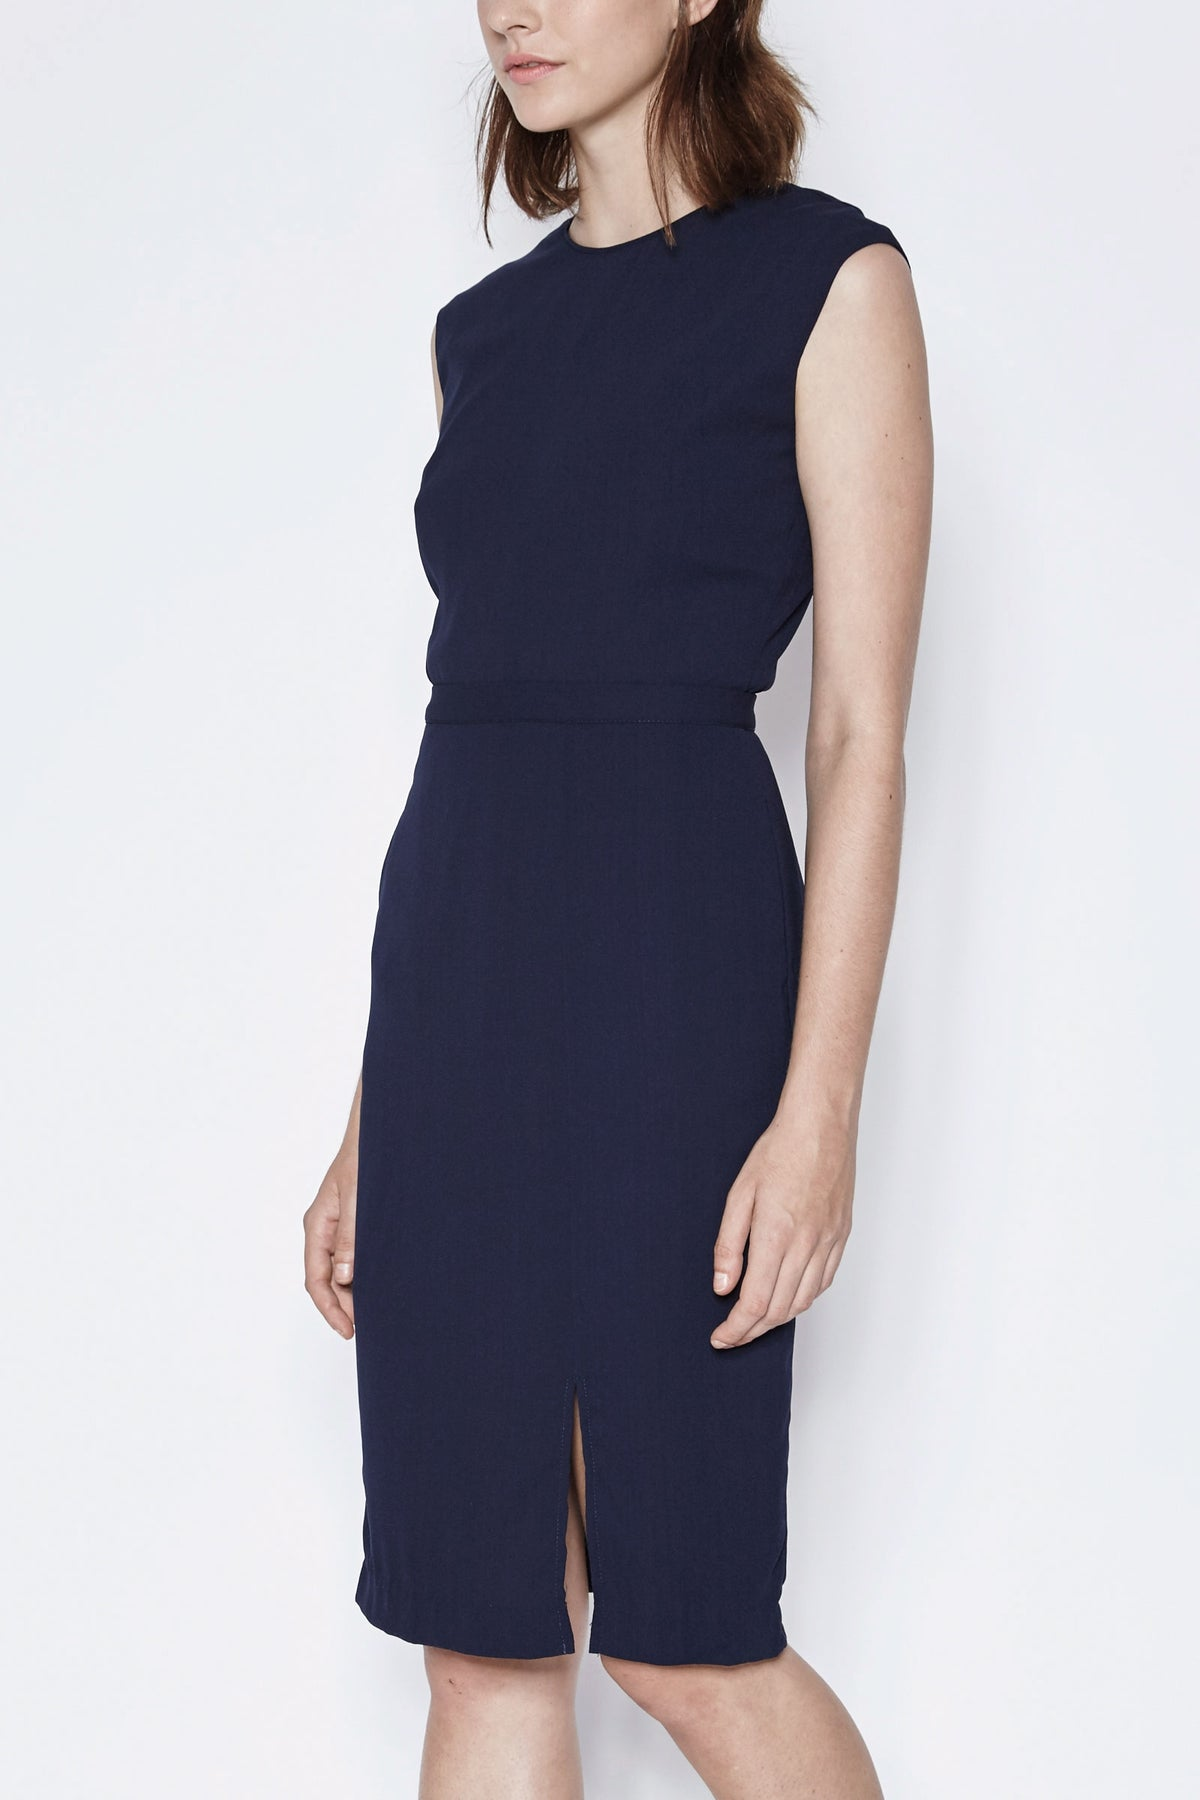 Thigh Split Tailored Dress In Navy